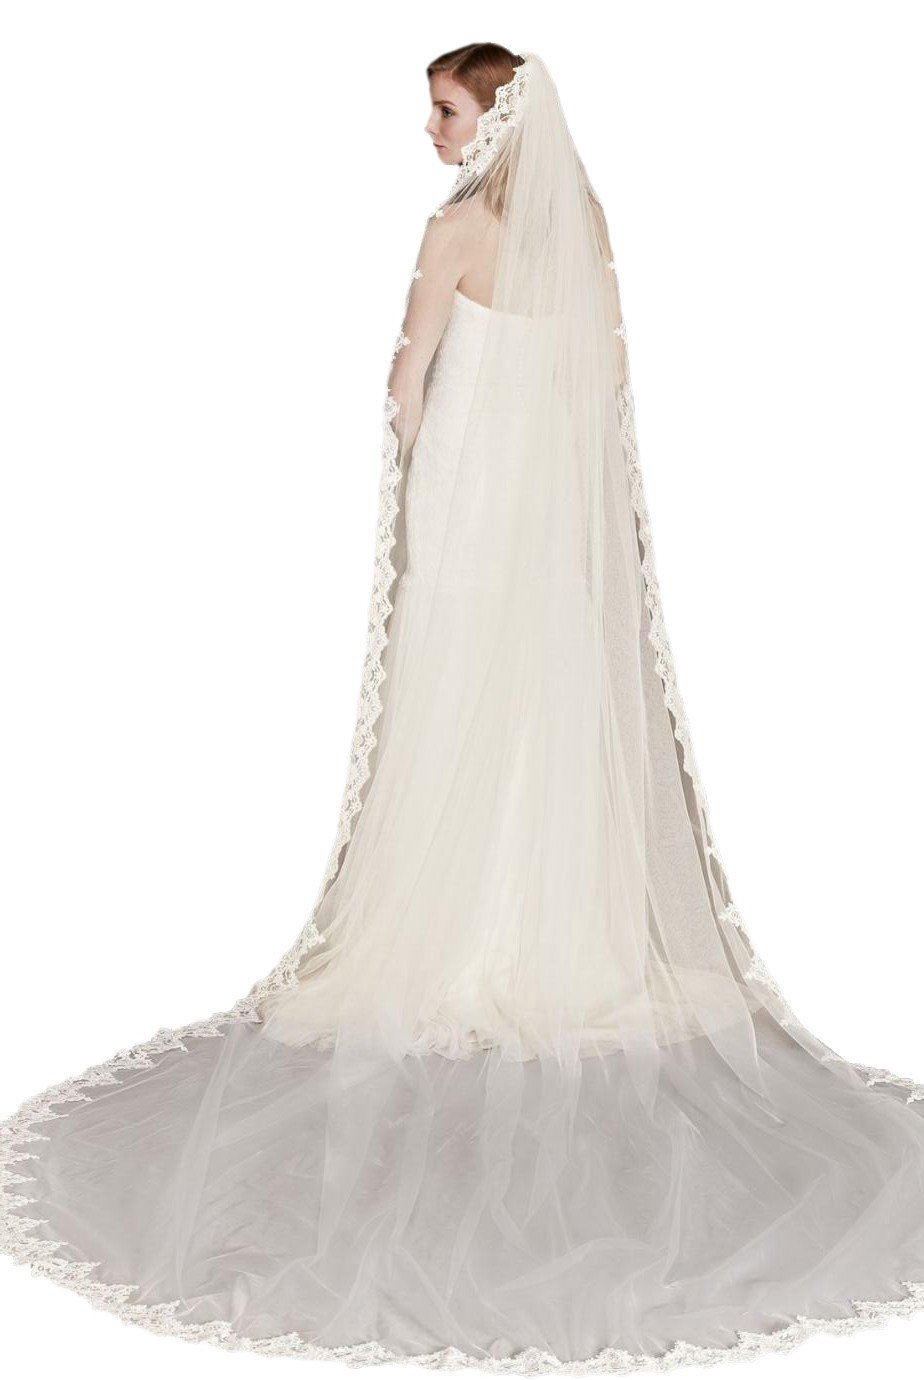 Passat Pale Ivory Single-Tier 3M Corded Lace Cathedral Veil with Scalloped Edge DB2